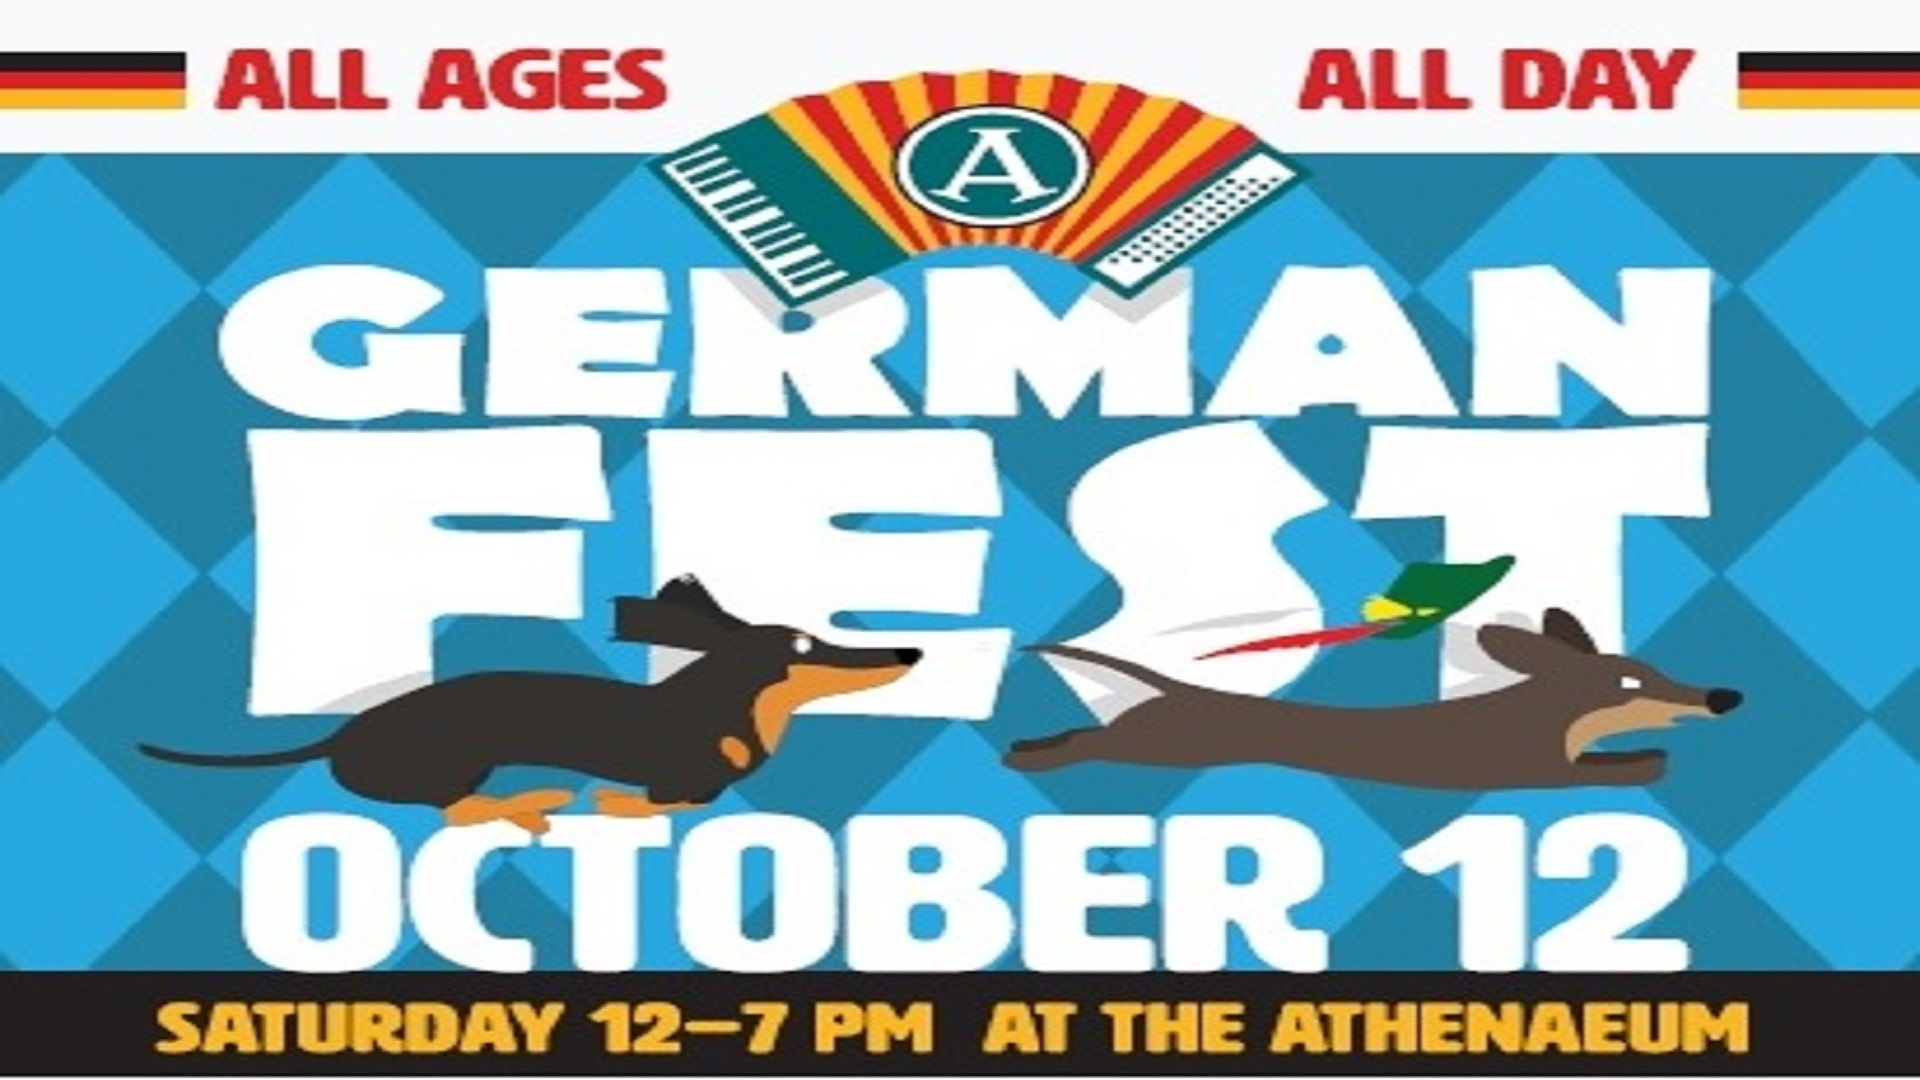 So Much Downtown Fun this Weekend: GermanFest & Cottage Home Block Party